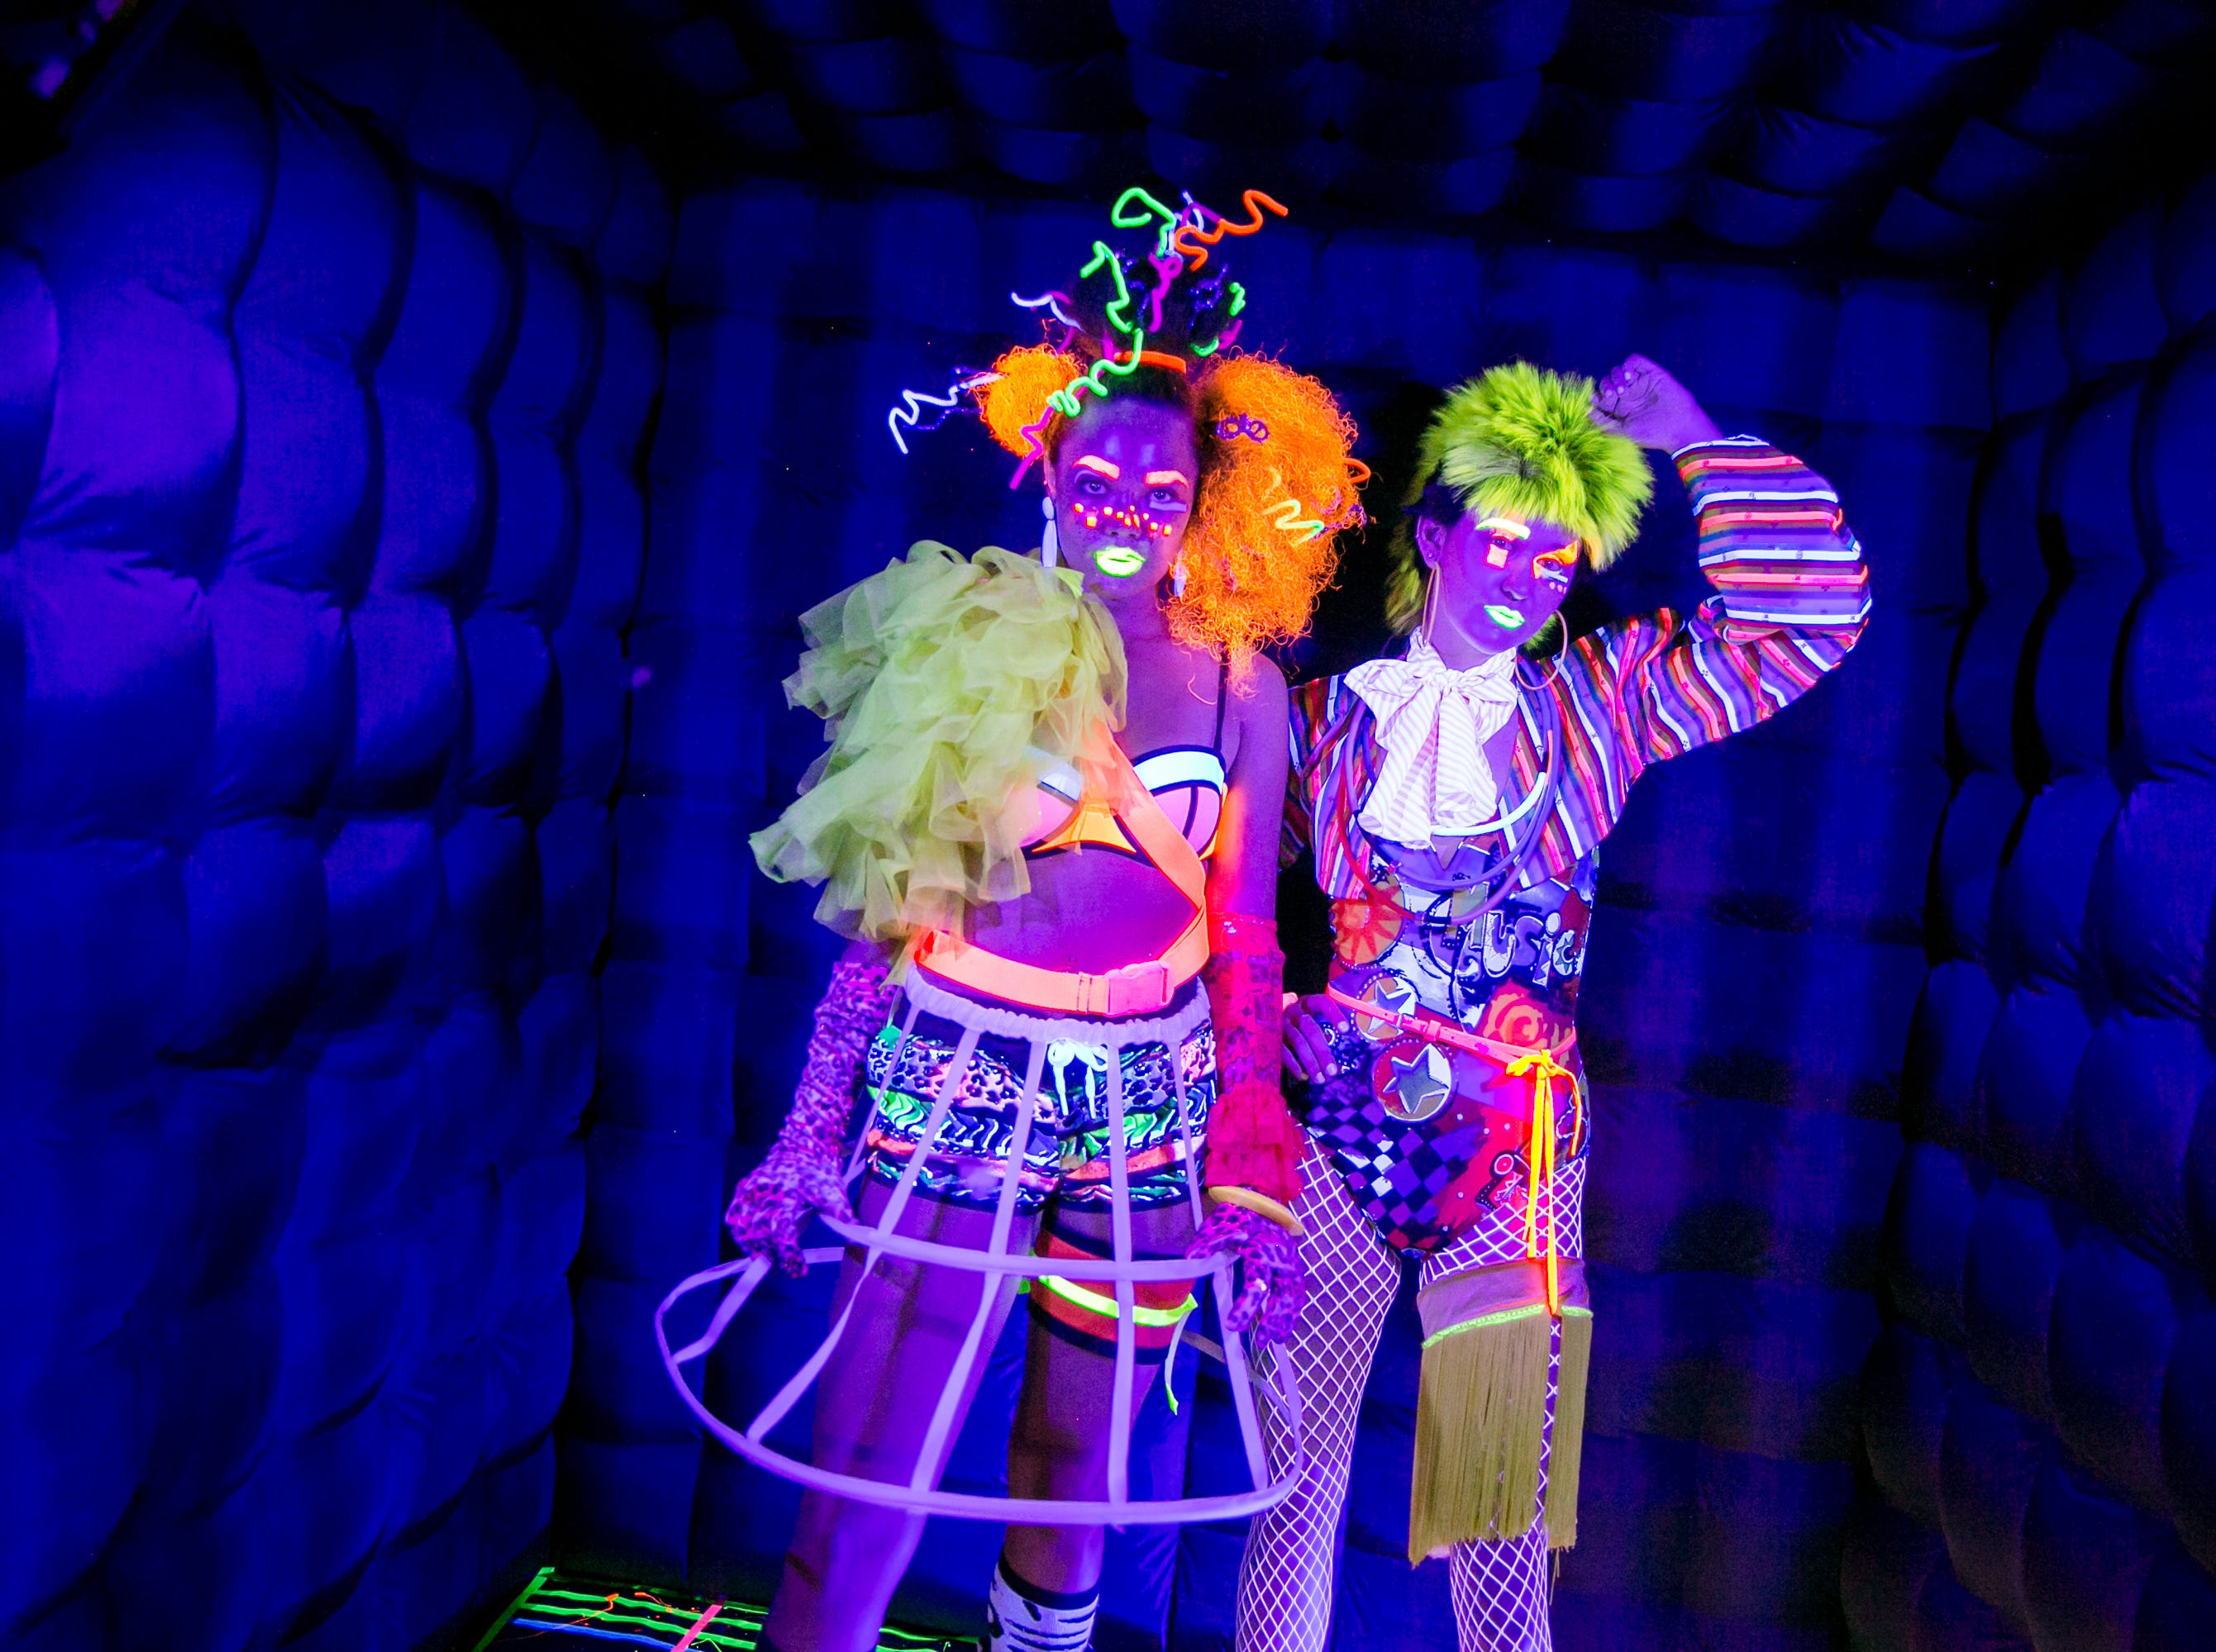 These performance artists were fun to wath at Chaos Theory 19 at Legend City Studios during First Friday on October 5, 2018.